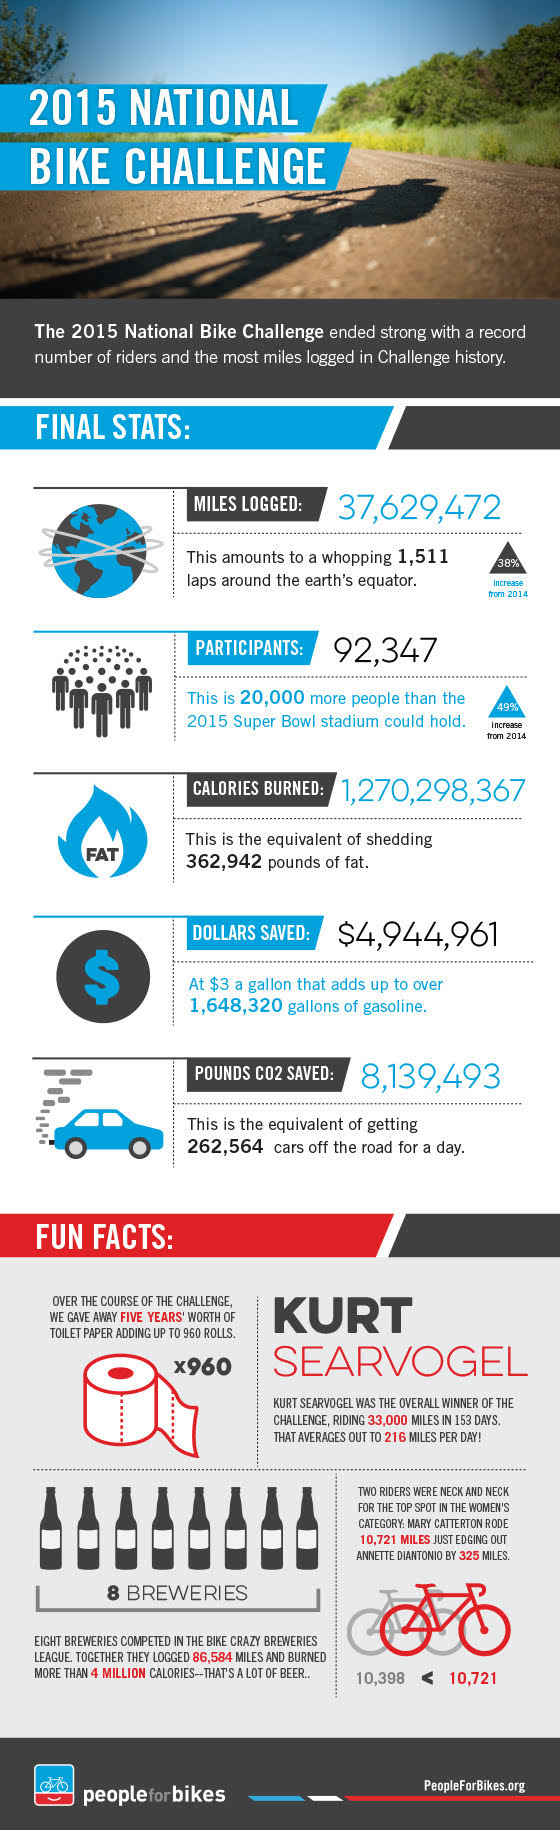 Infographic from the 2015 National Bike Challenge.